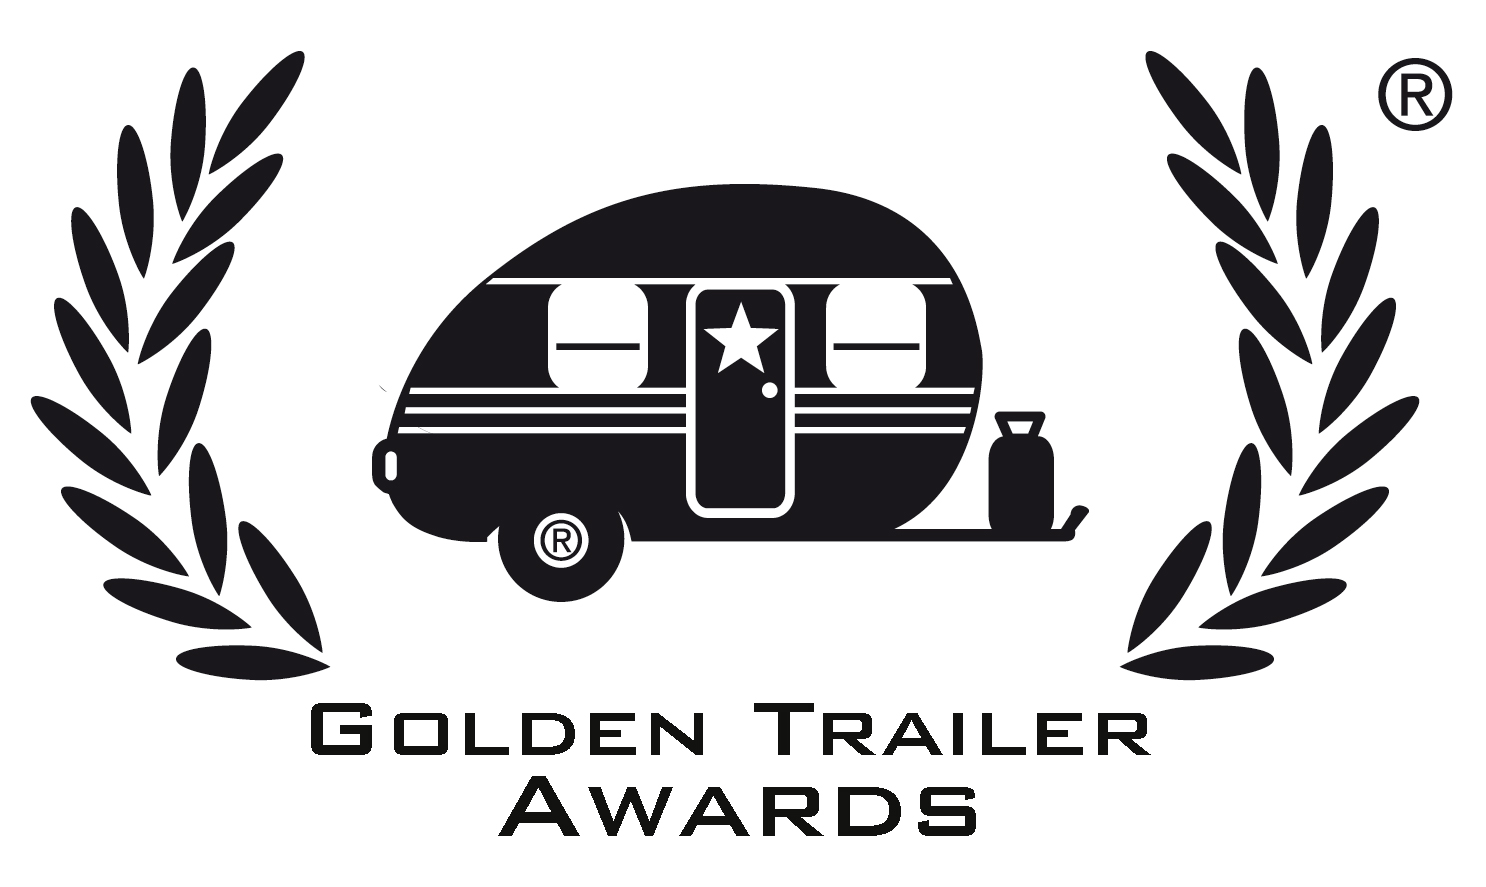 Golden Trailer Award